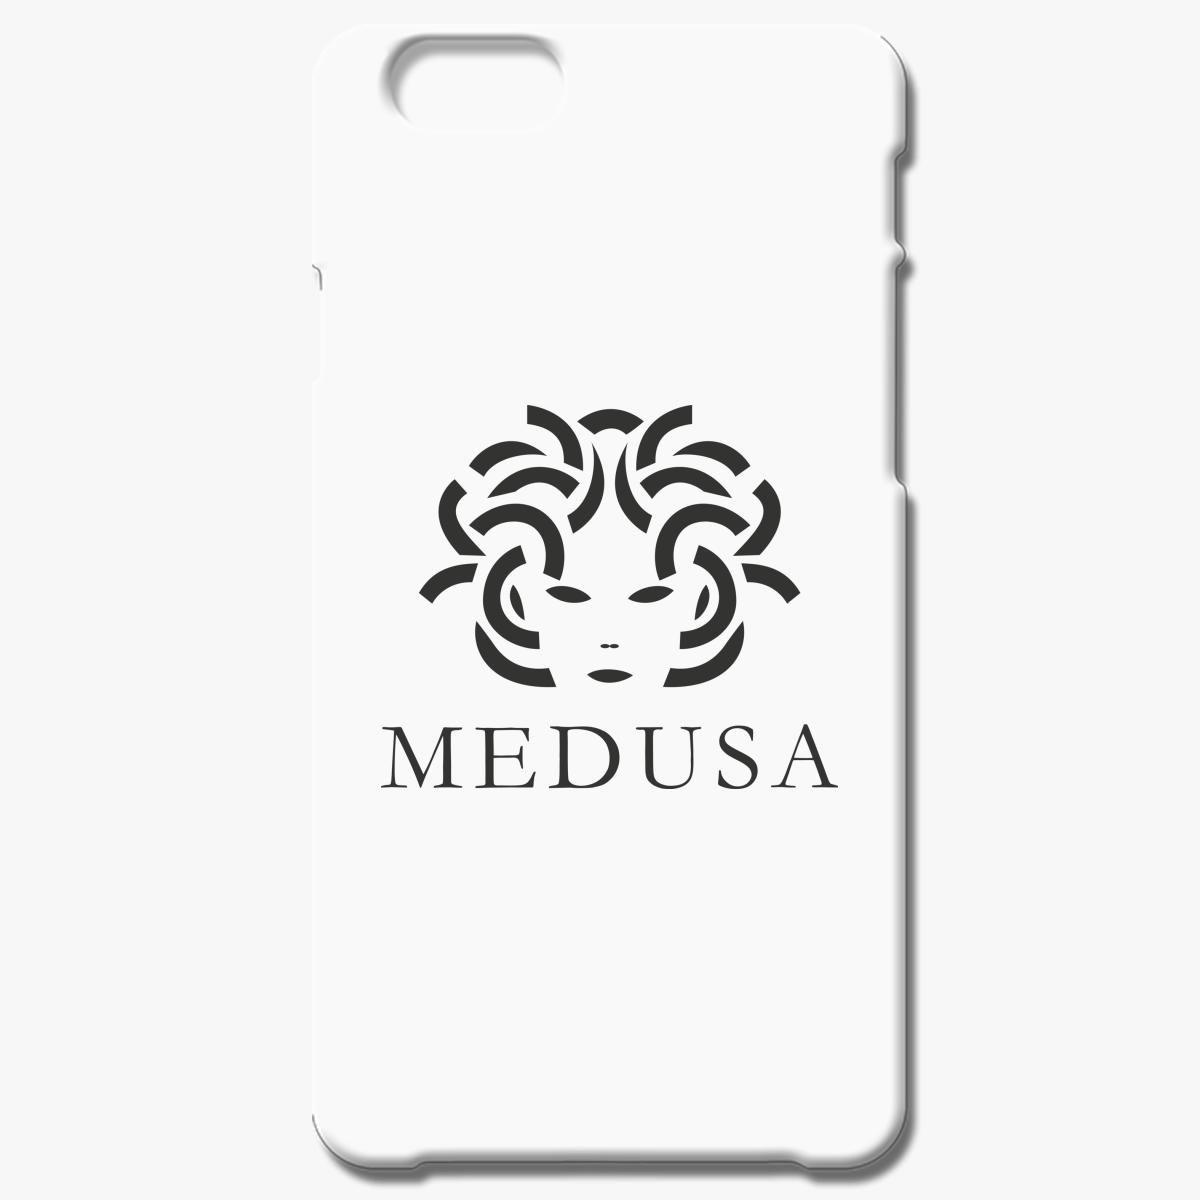 Medusa Logo Iphone 6 6s Plus Case